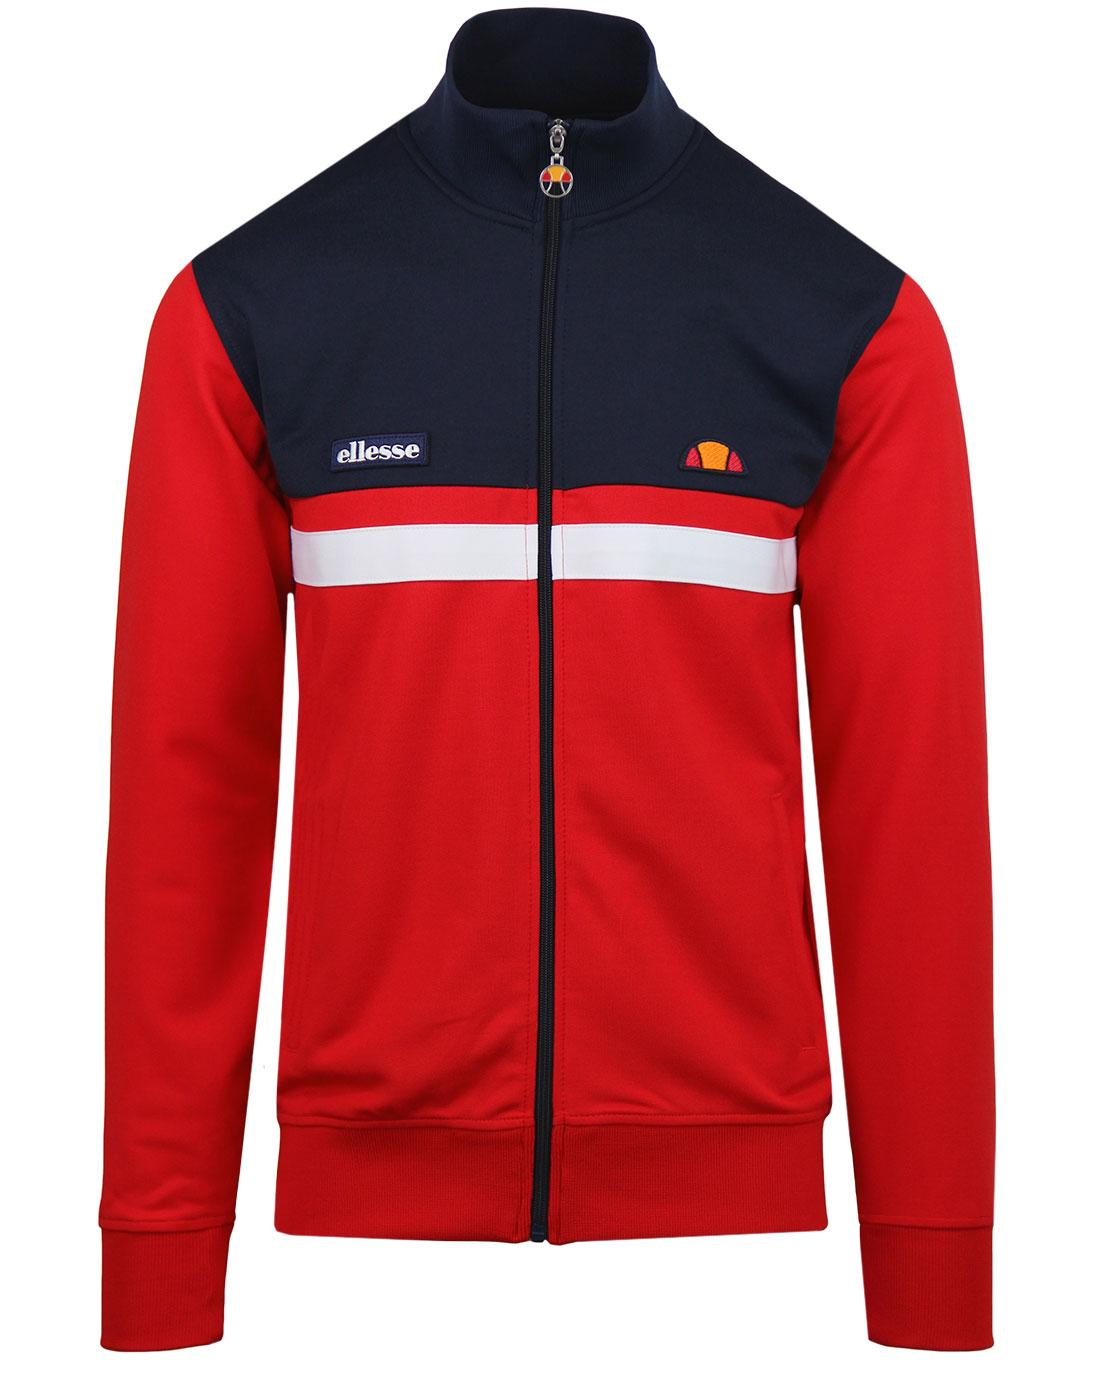 Transimeno ELLESSE Retro 1980s Panel Track Top RED